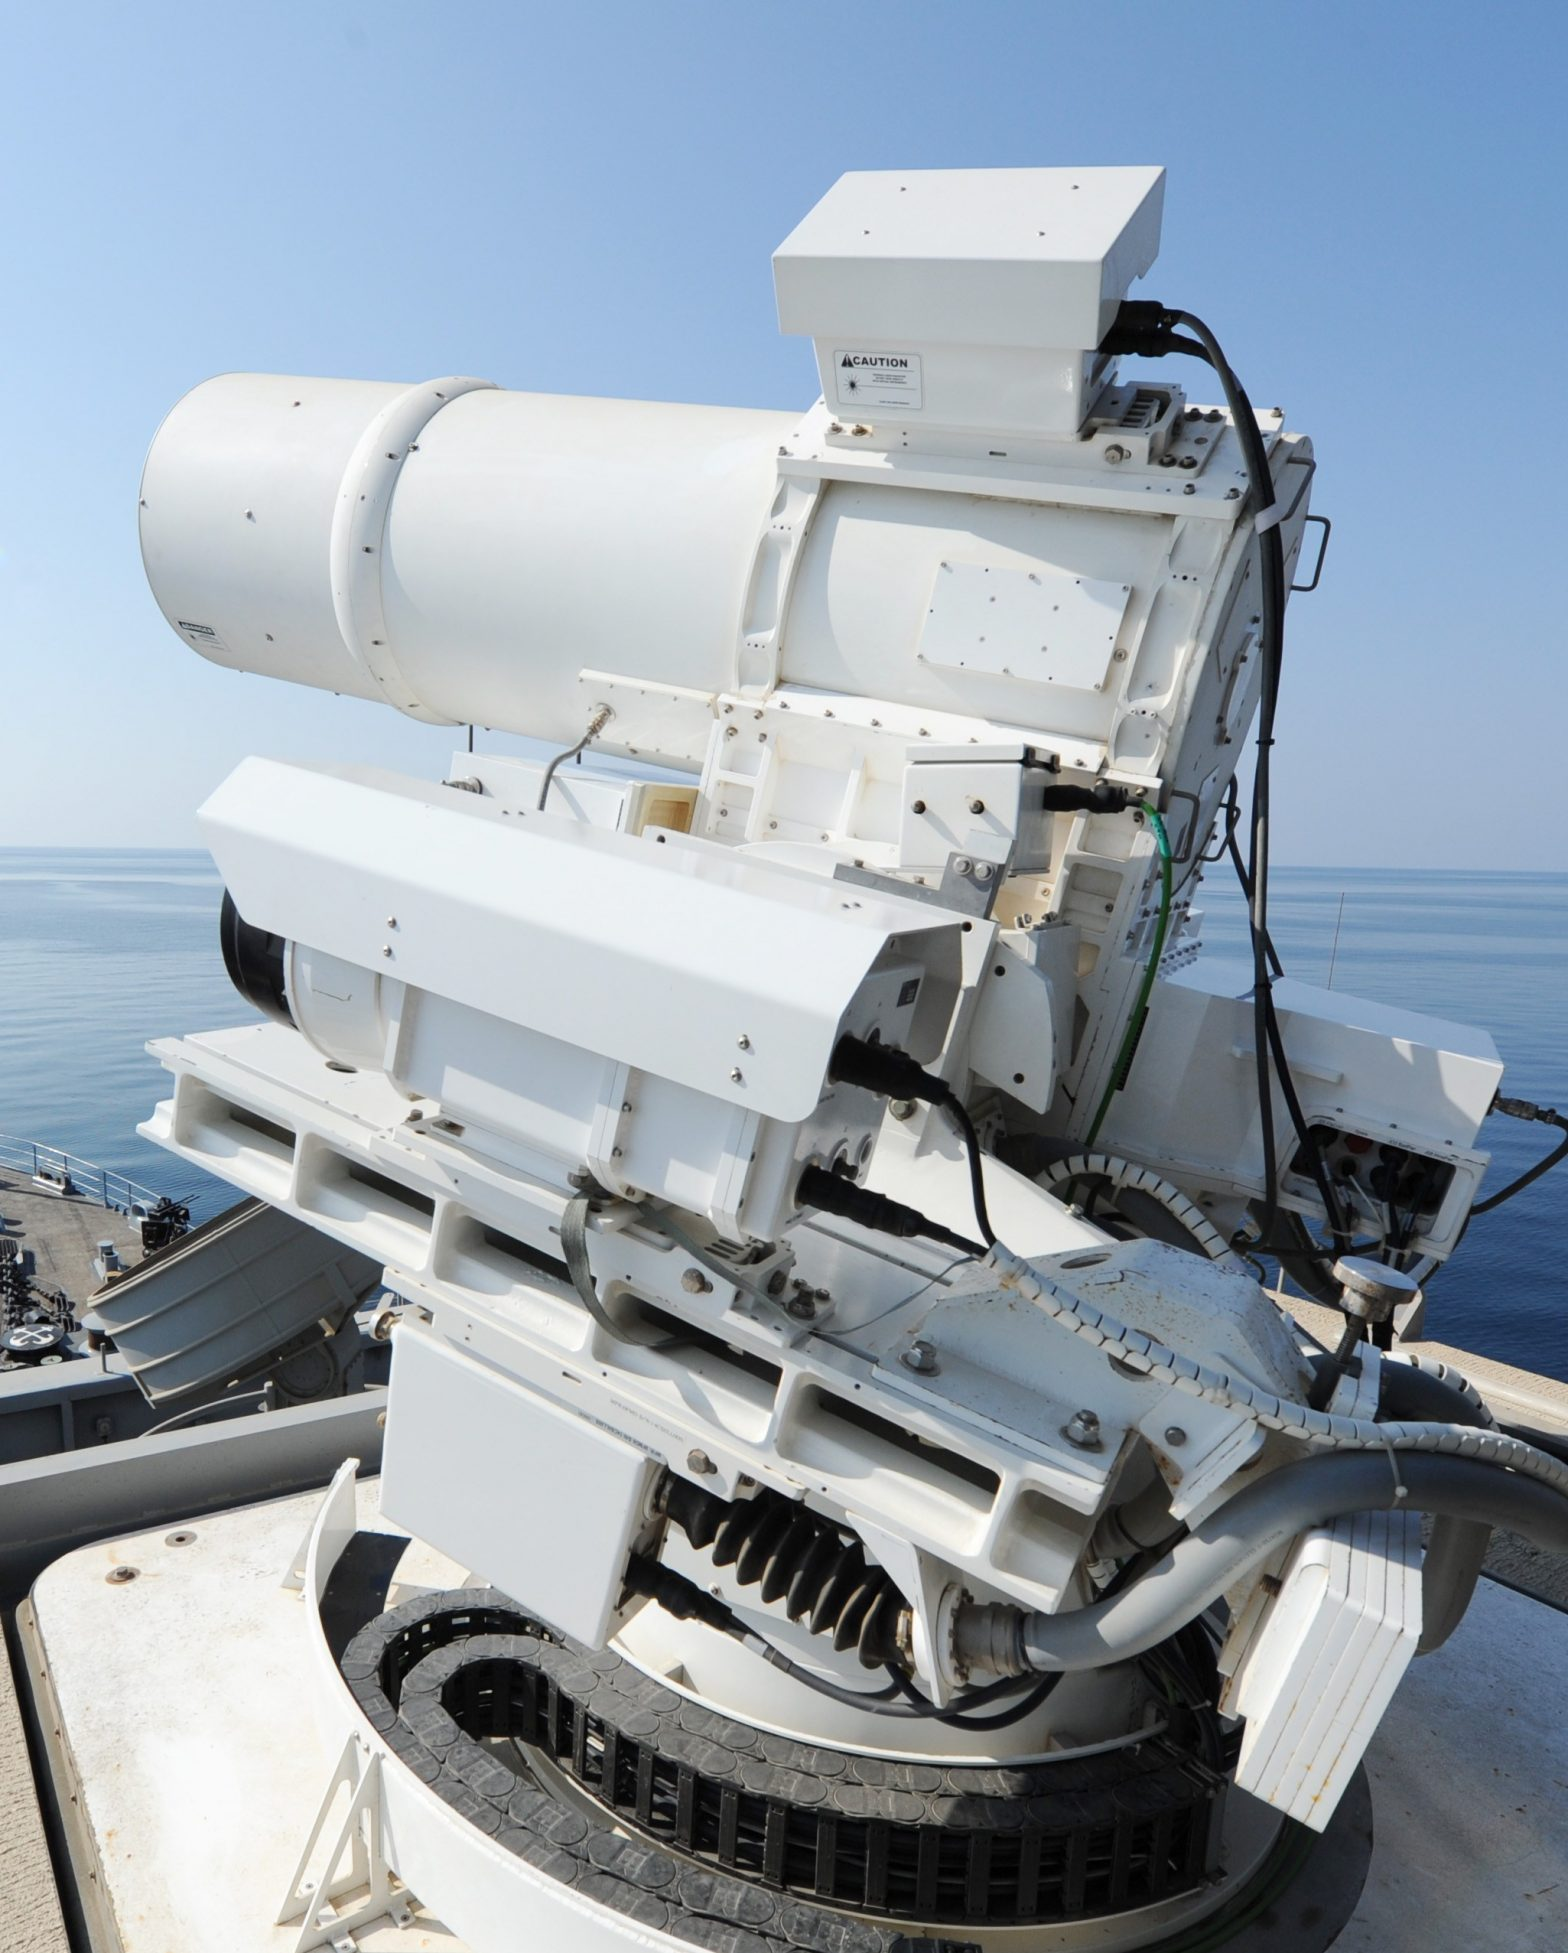 US Navy Requests $300M in Fiscal Year 2019 to Develop Shipboard Laser Weapons